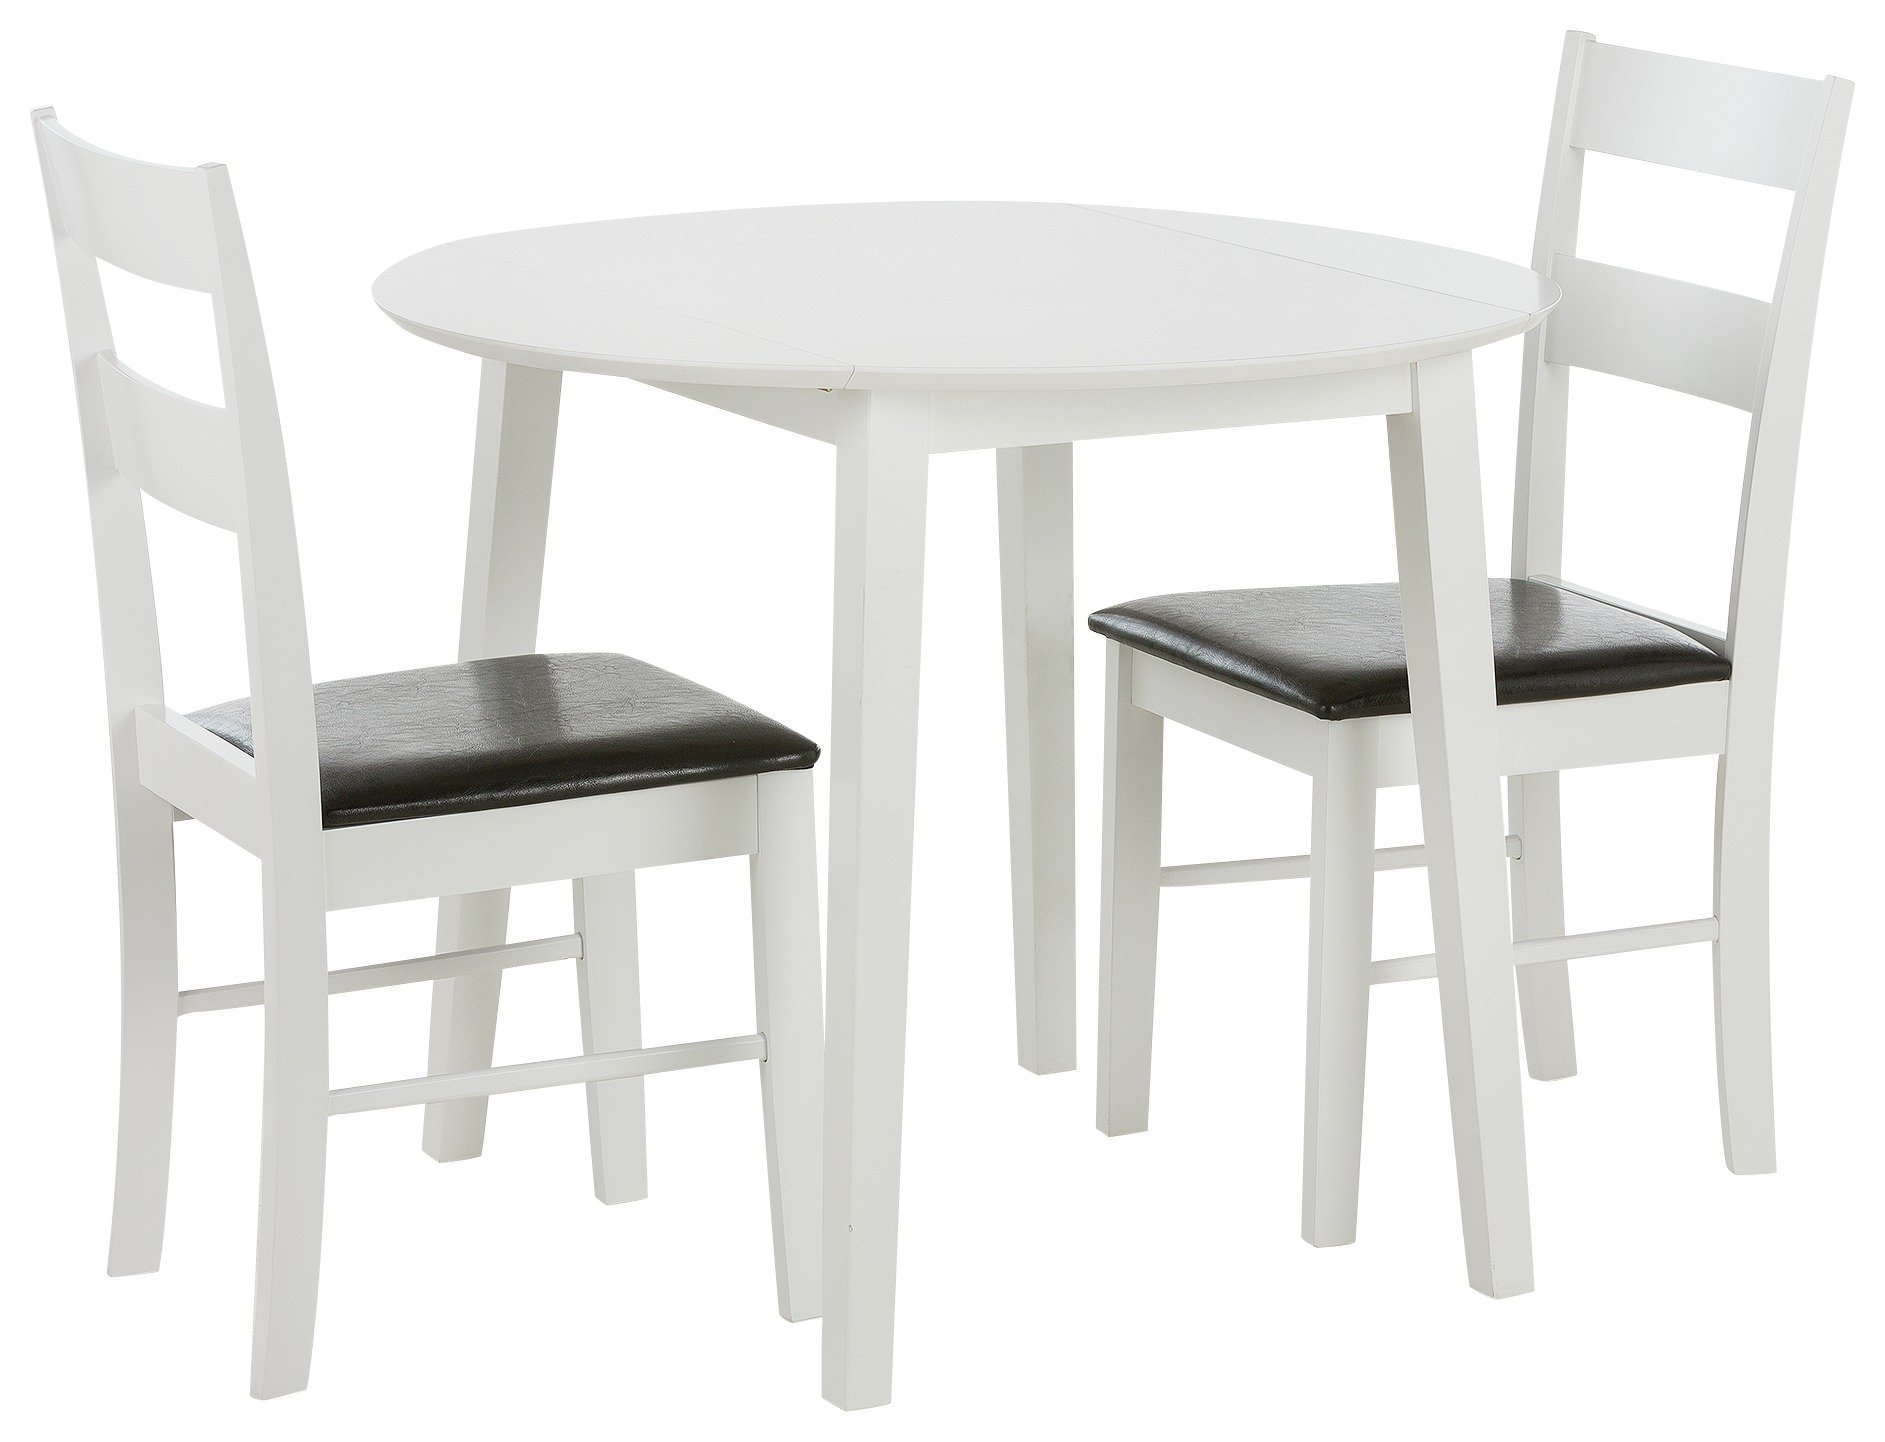 Buy Argos Home Wyton Round Drop Leaf Table 2 Chairs White